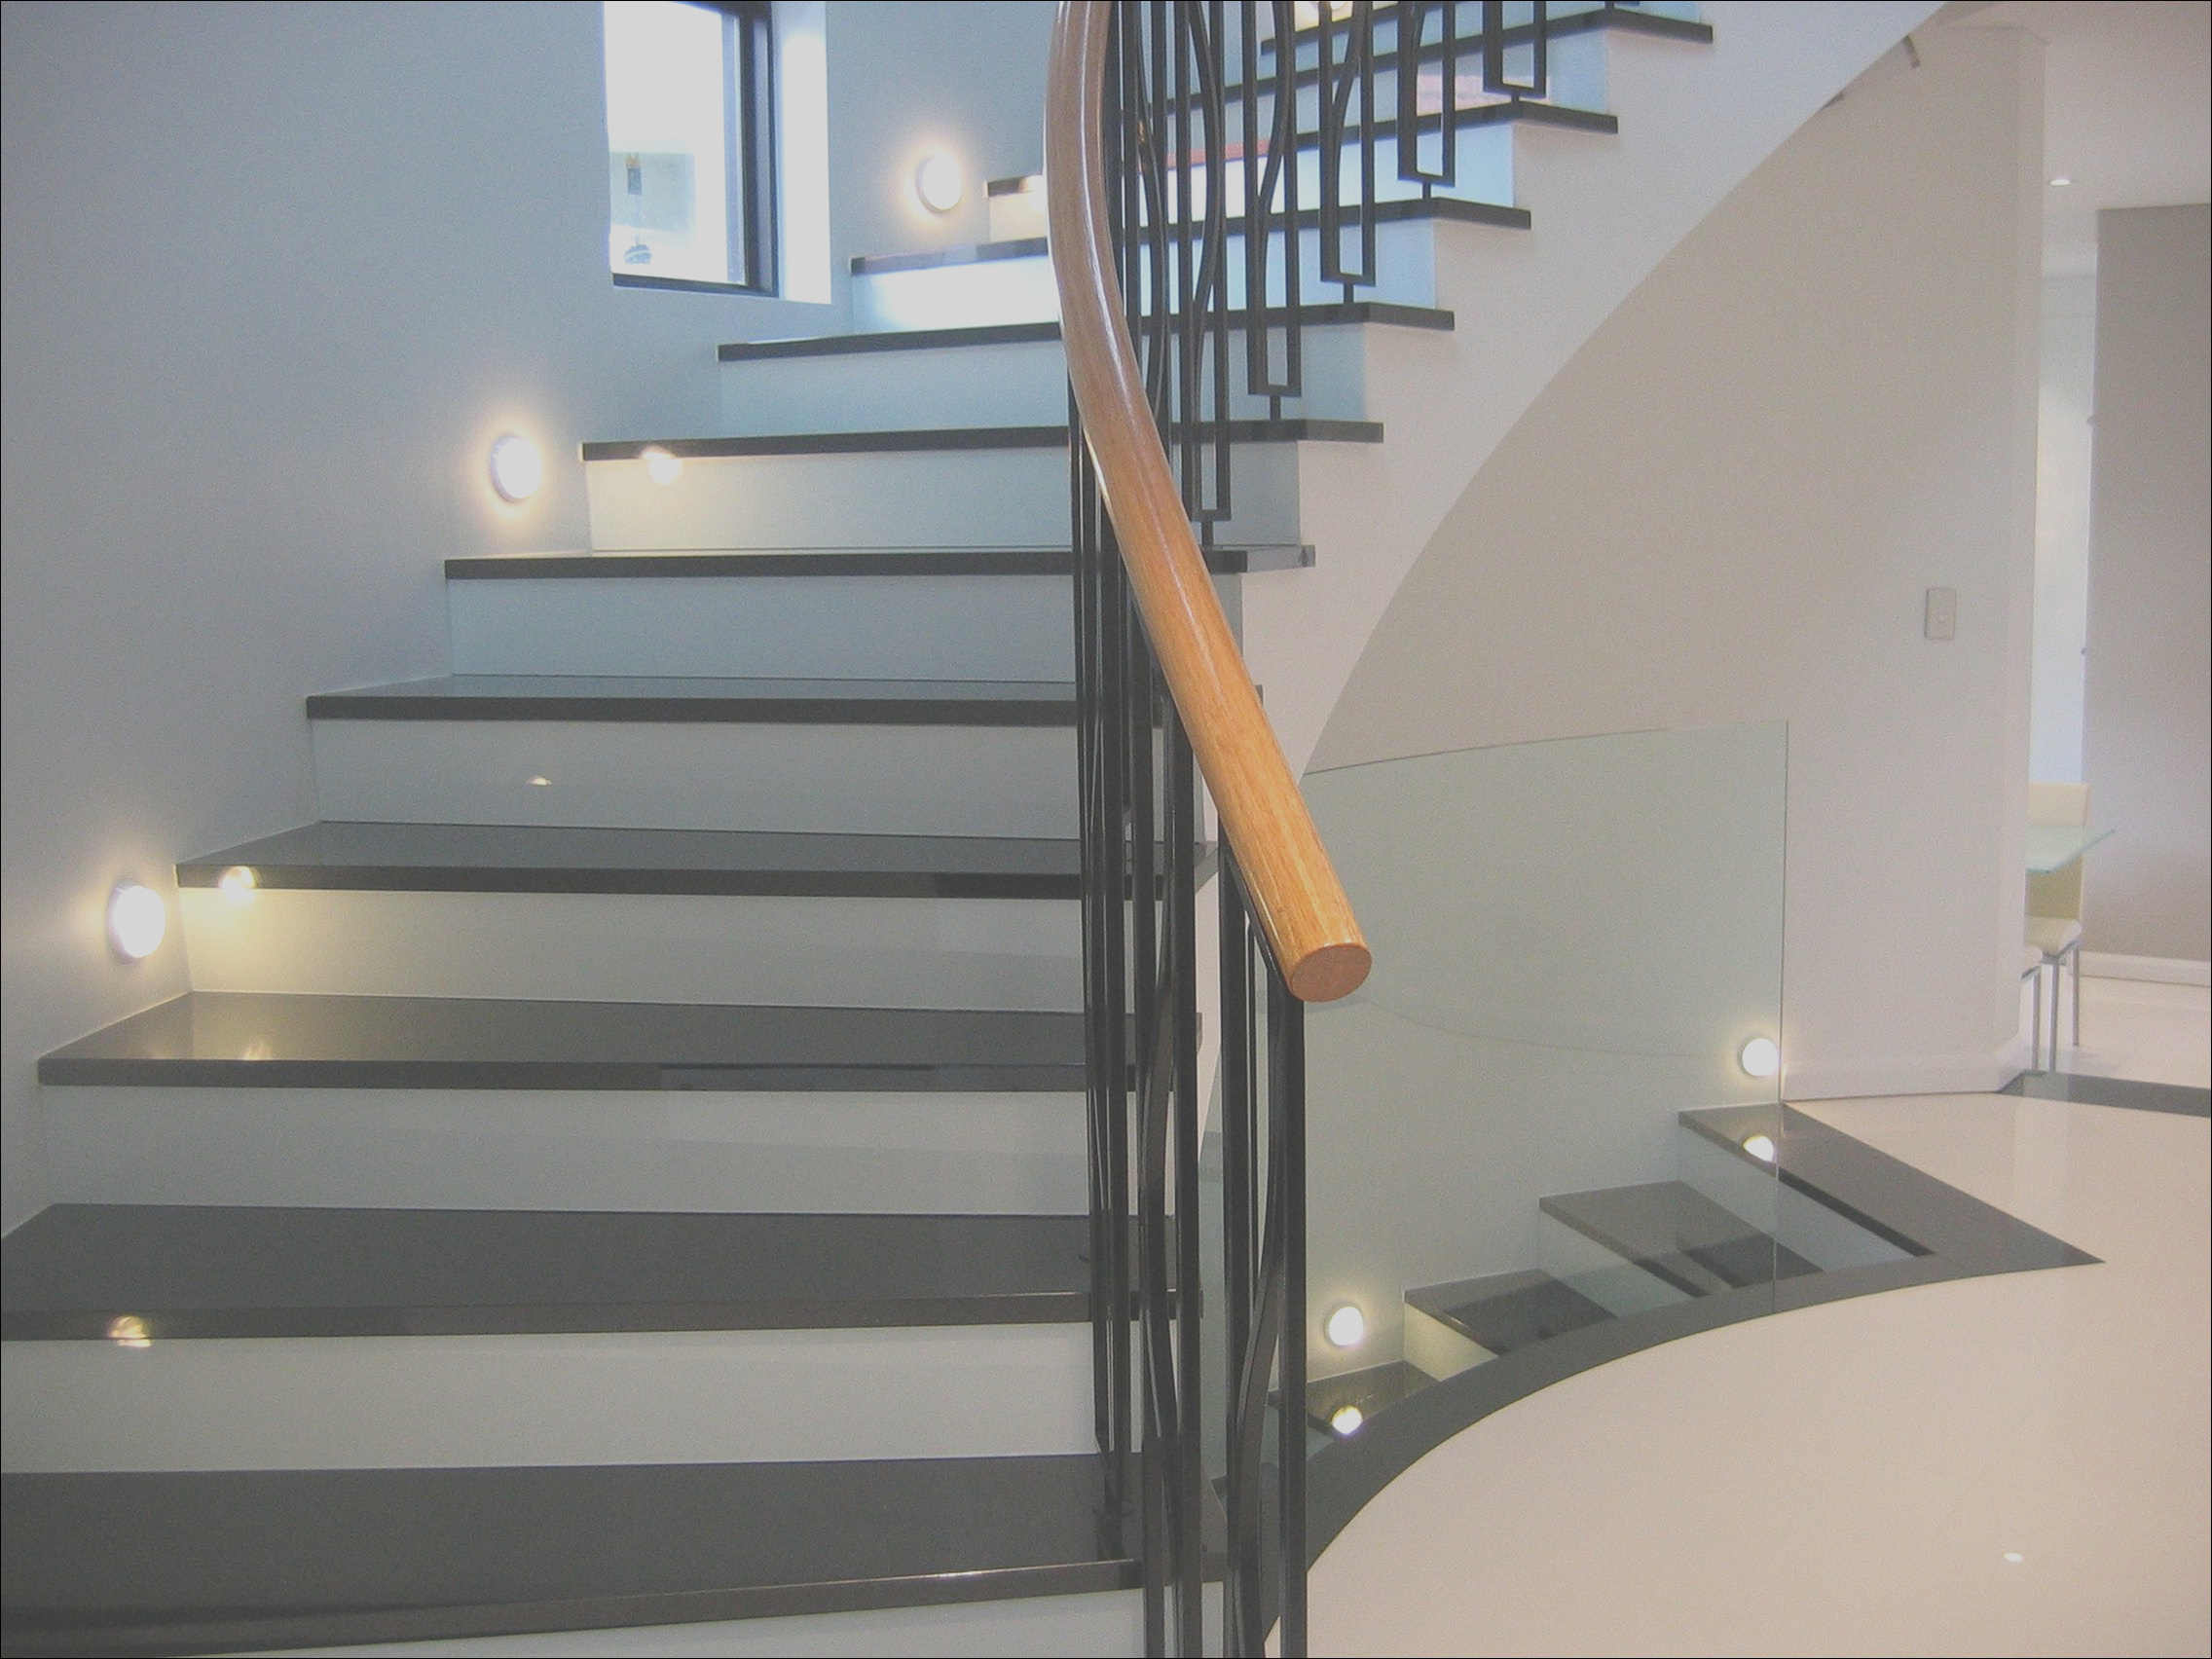 15 incredible home stair design with light that very beautiful